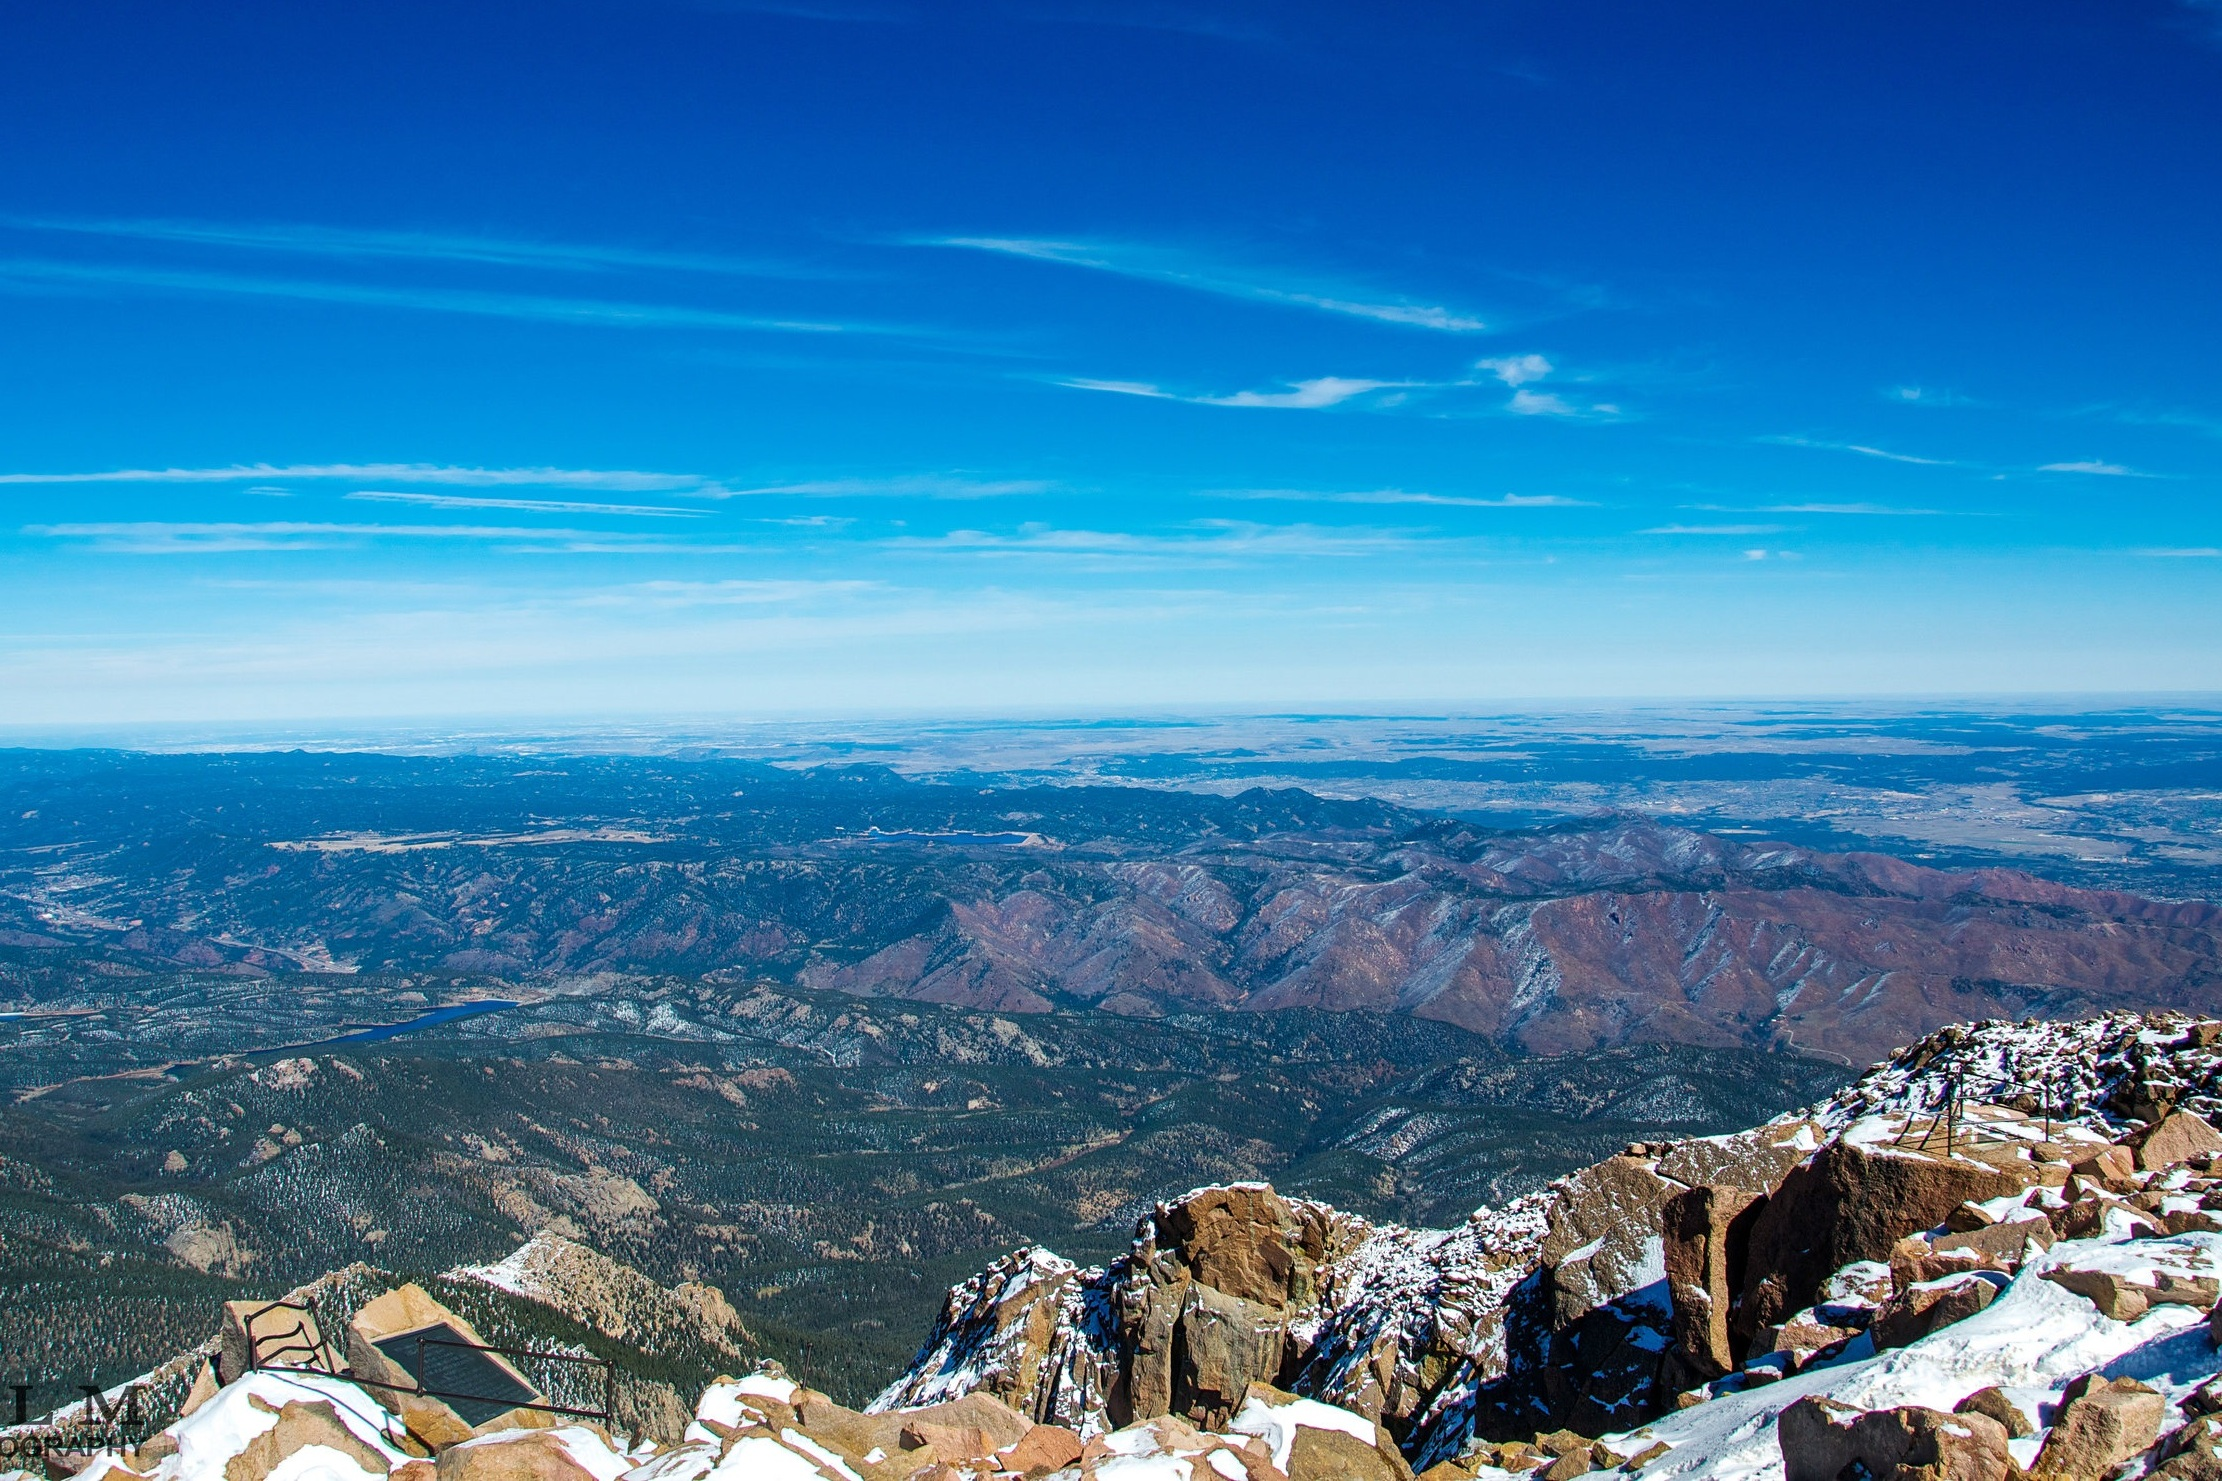 Pikes Peak Summit - Difficulty: ChallengingTime: 7 - 9 Hours (One Way)Distance: 7 Miles (One Way)Time: 12 Hours (Round Trip)Distance: 14 Miles (Round Trip)Contact for Pricing